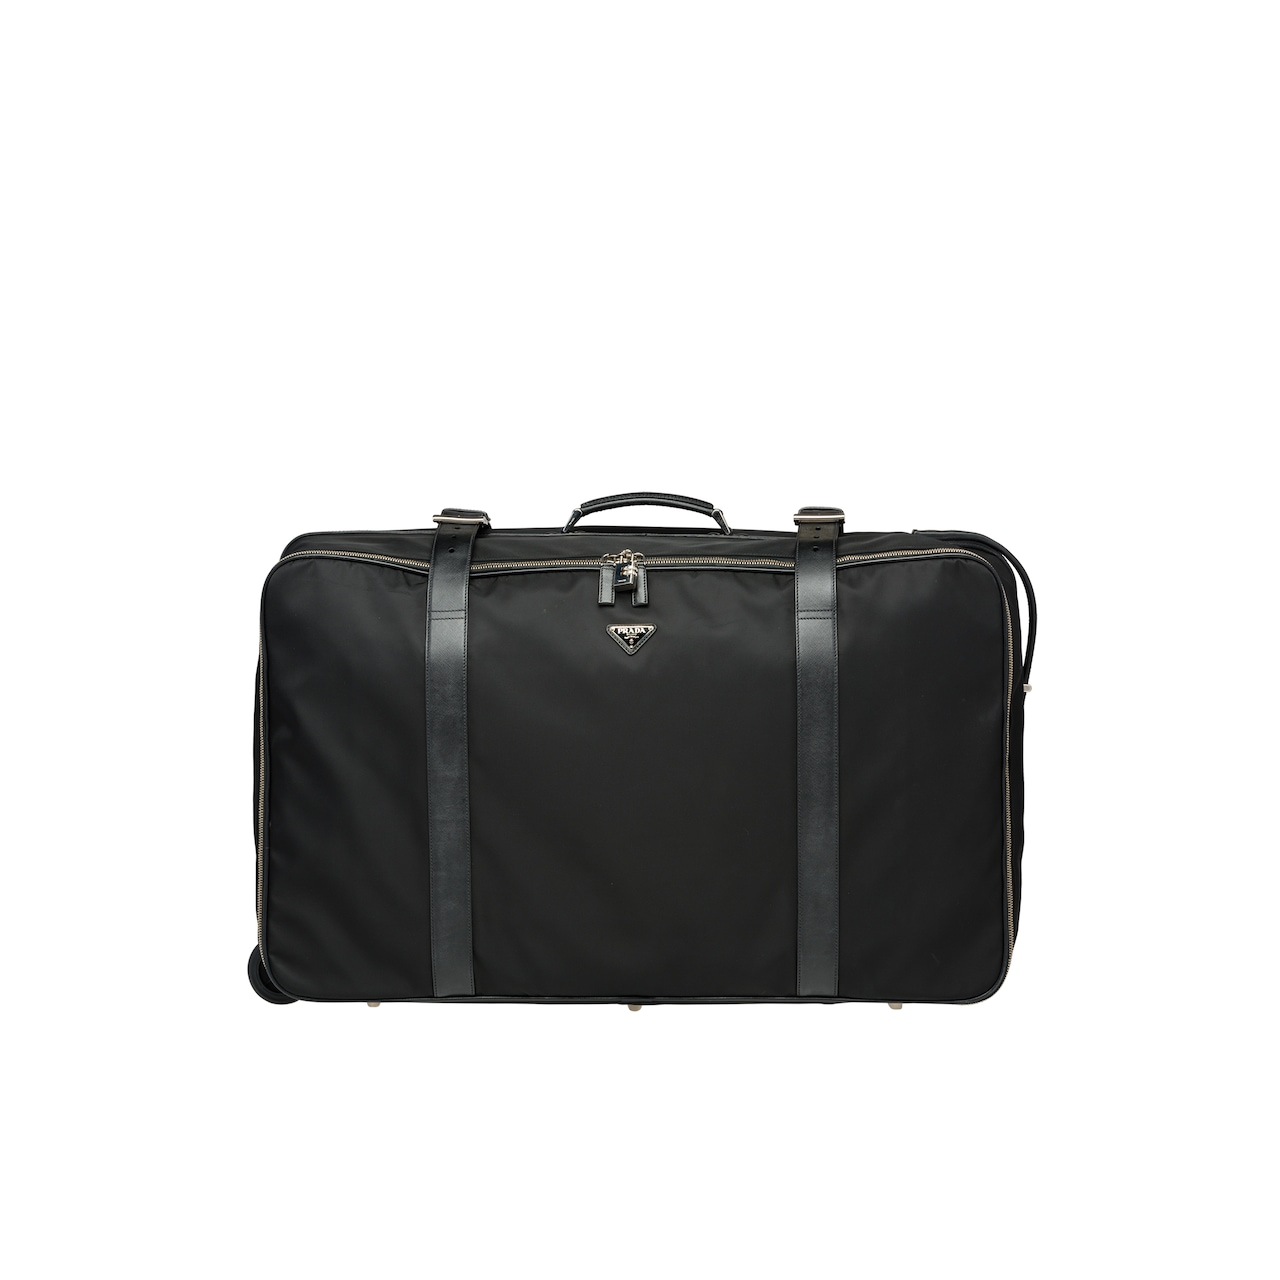 Prada Nylon Semi-Rigid Suitcase 1